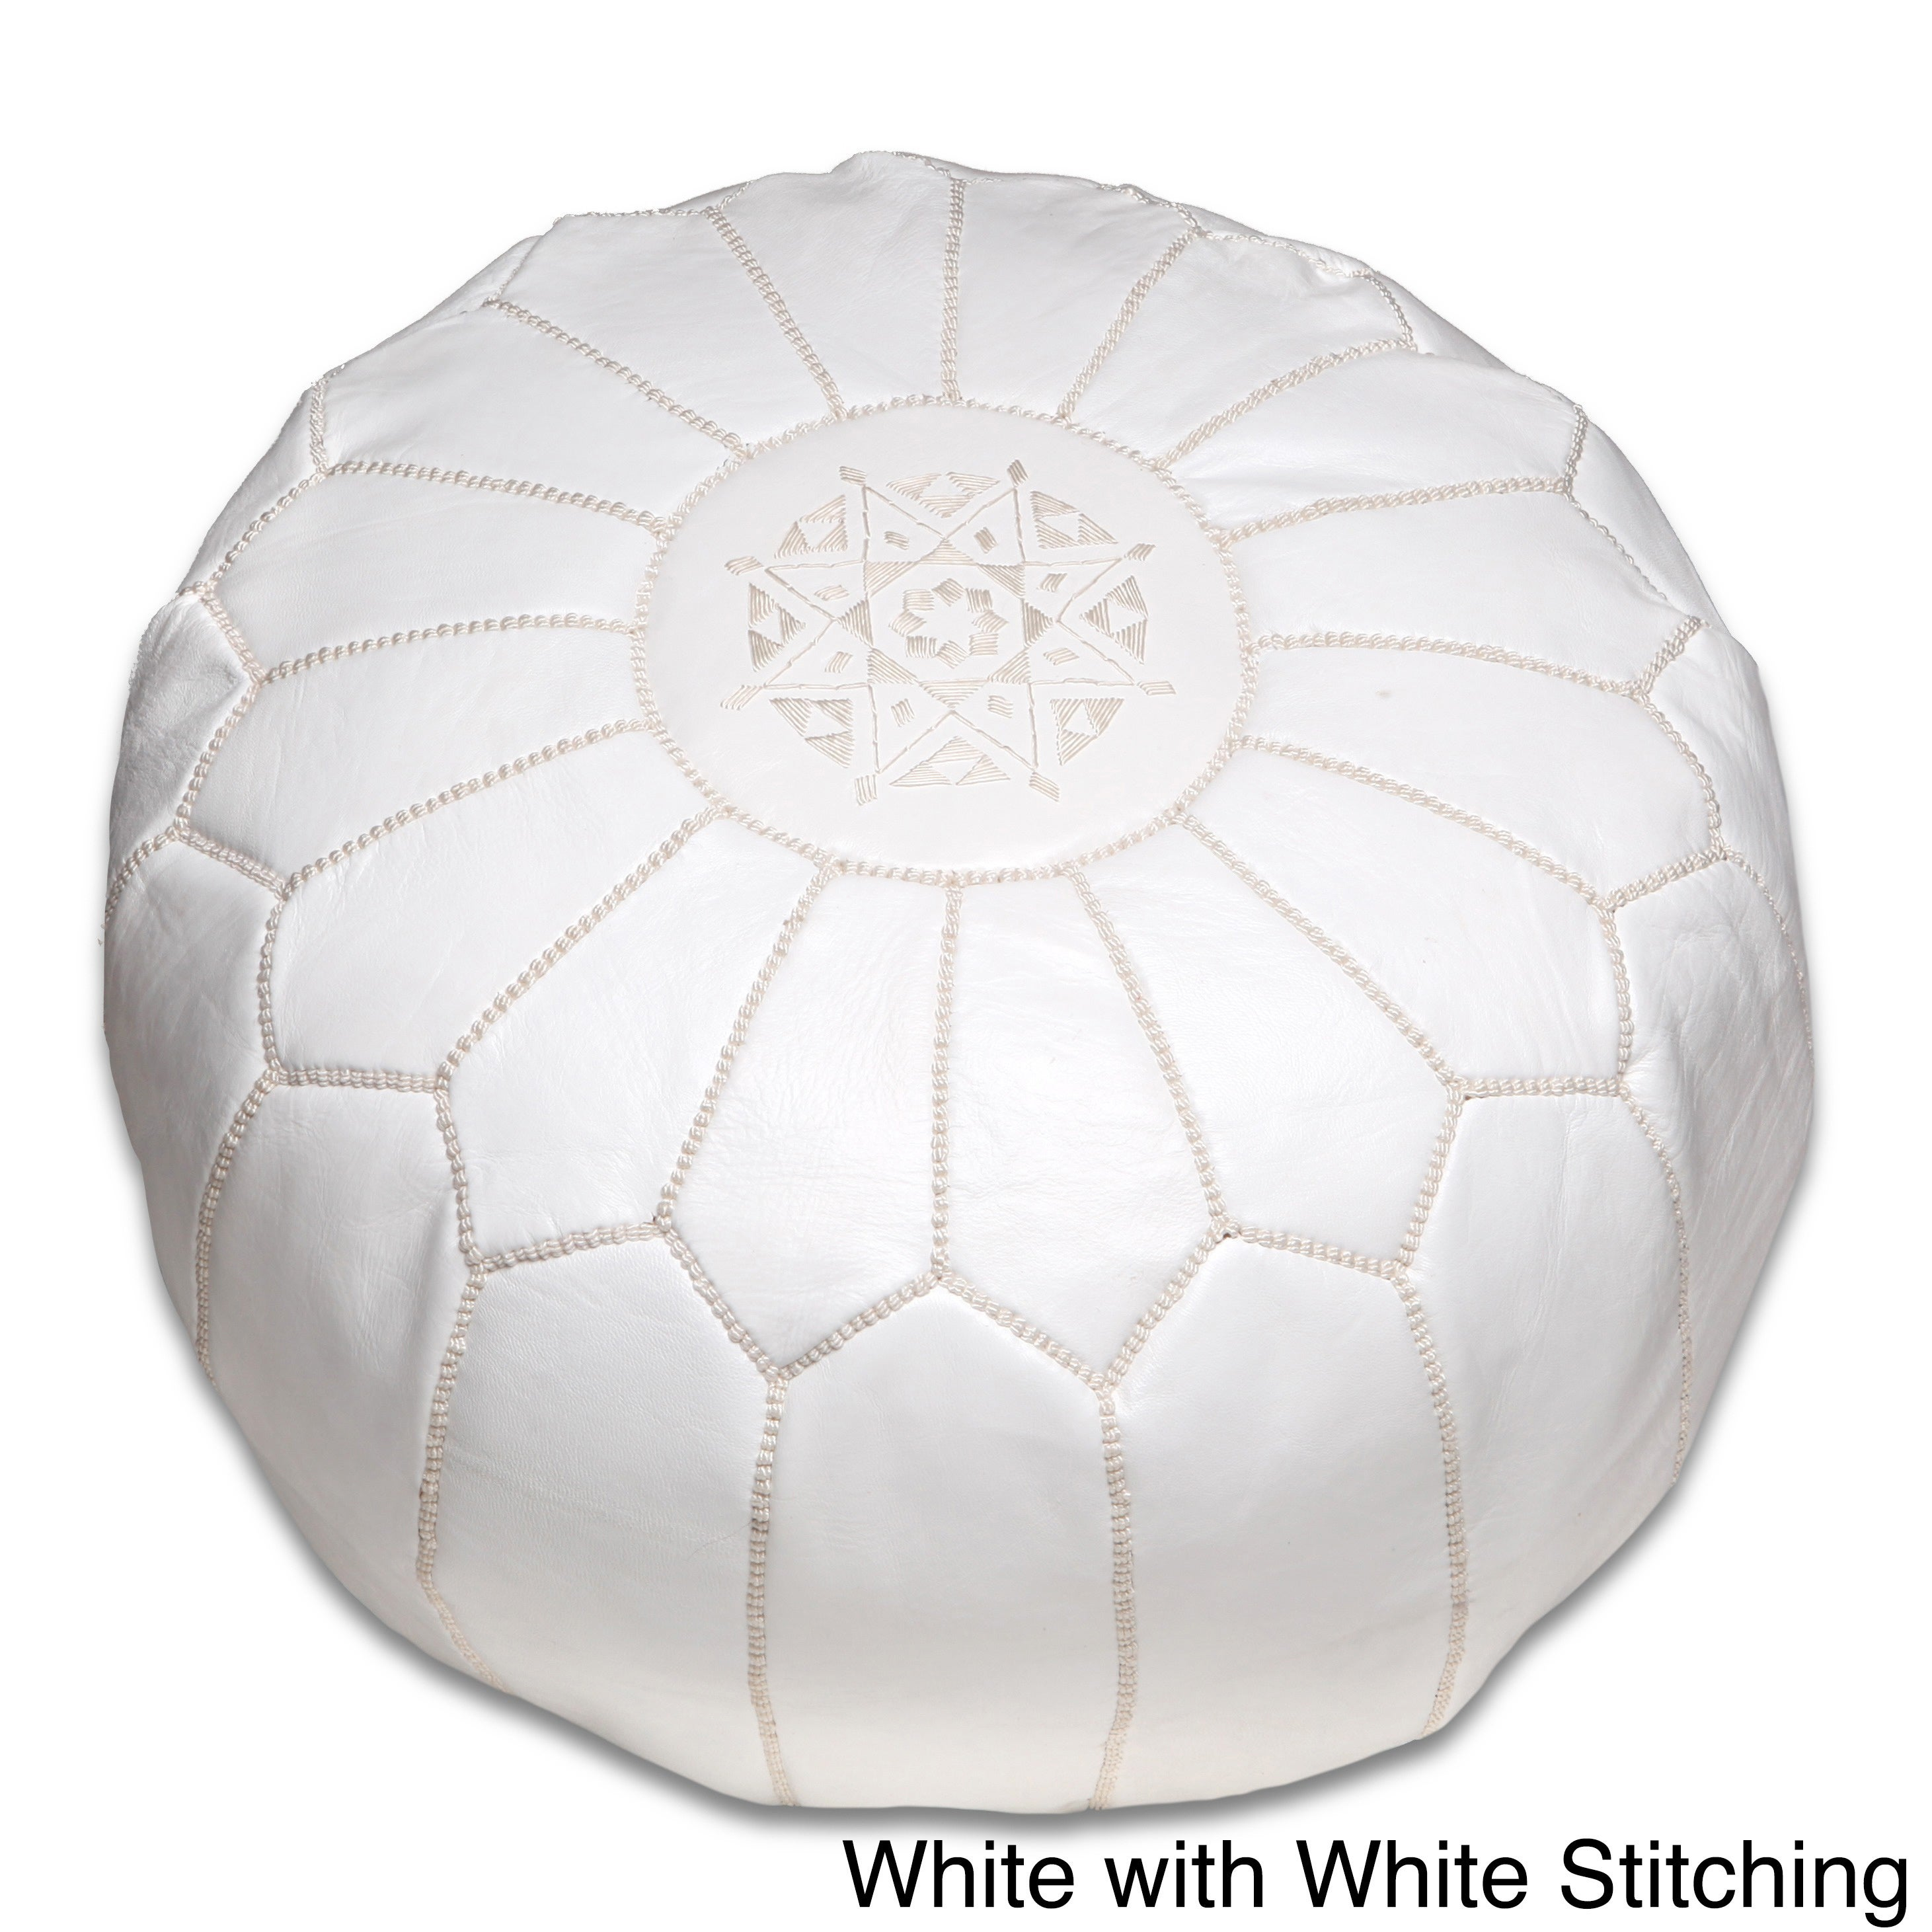 Moroccan Luxury White Handmade Leather Pouf With Grey Stitching Home & Garden